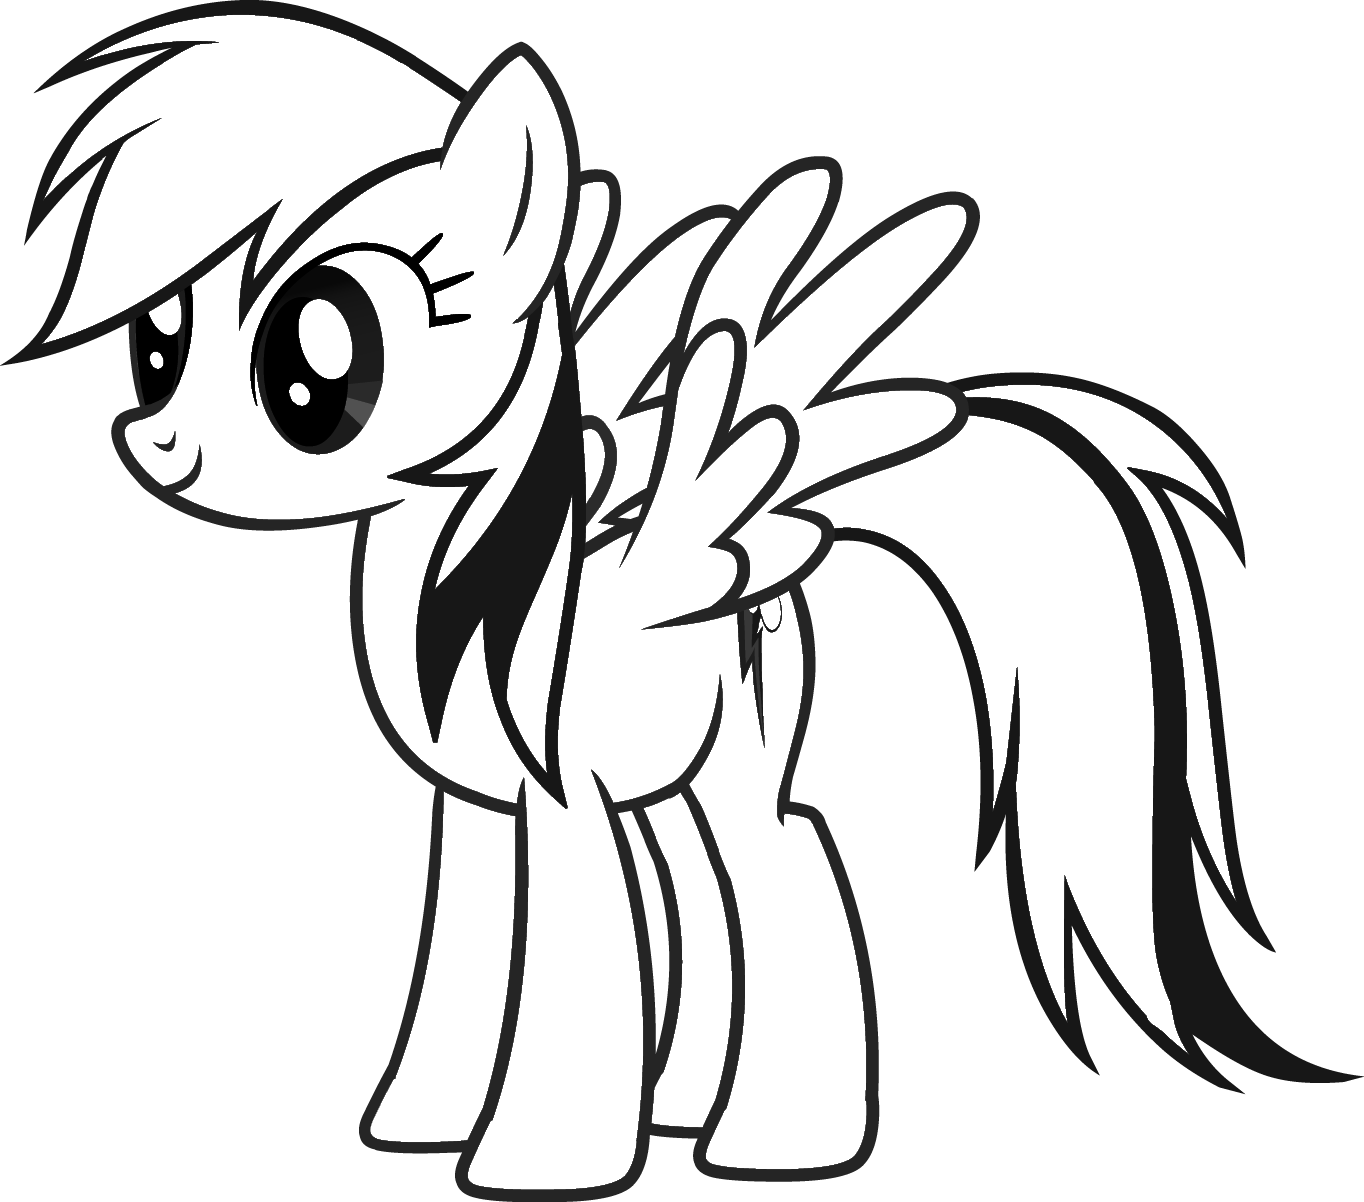 my little pony friendship is magic colouring pages my little pony friendship is magic coloring pages lets is pony pages magic colouring my friendship little